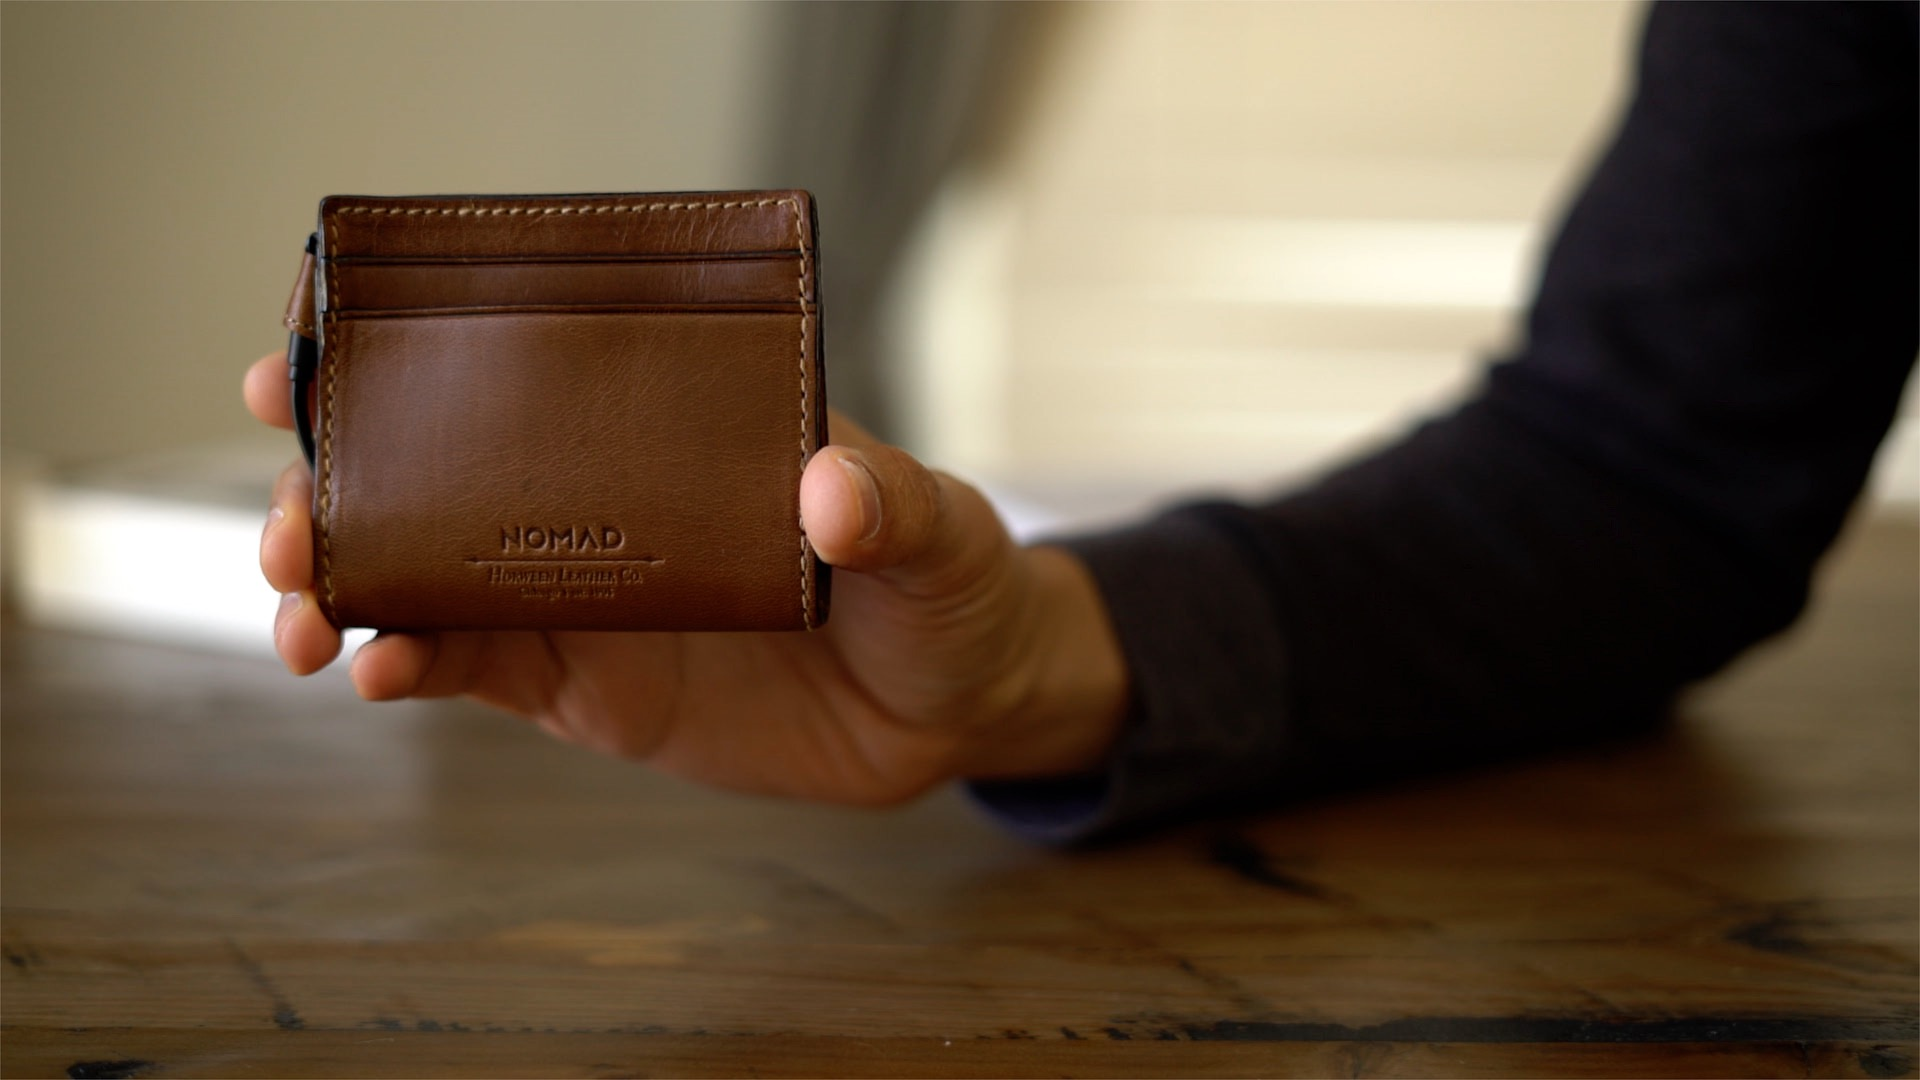 nomad-leather-wallet-integrated-battery-mfi-lightning-hands-on-02